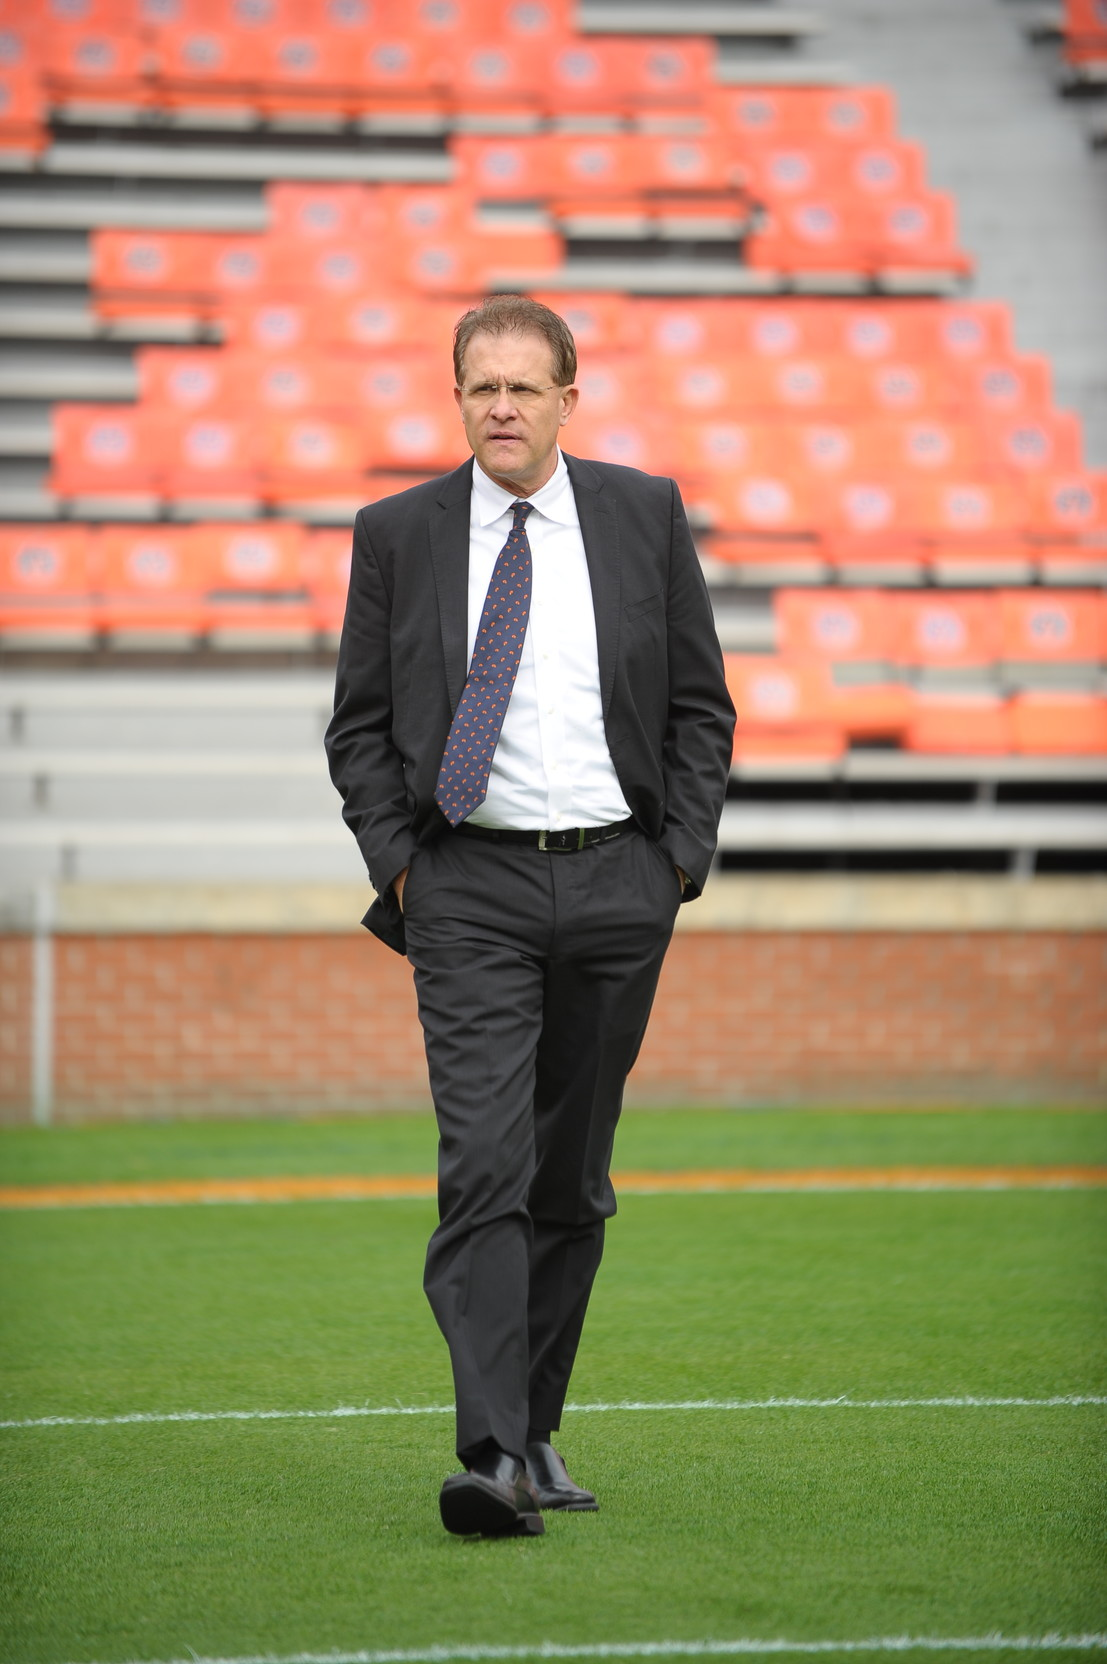 Auburn Tigers head coach Gus Malzahn walks the field prior to Saturday's game, at Jordan-Hare Stadium.